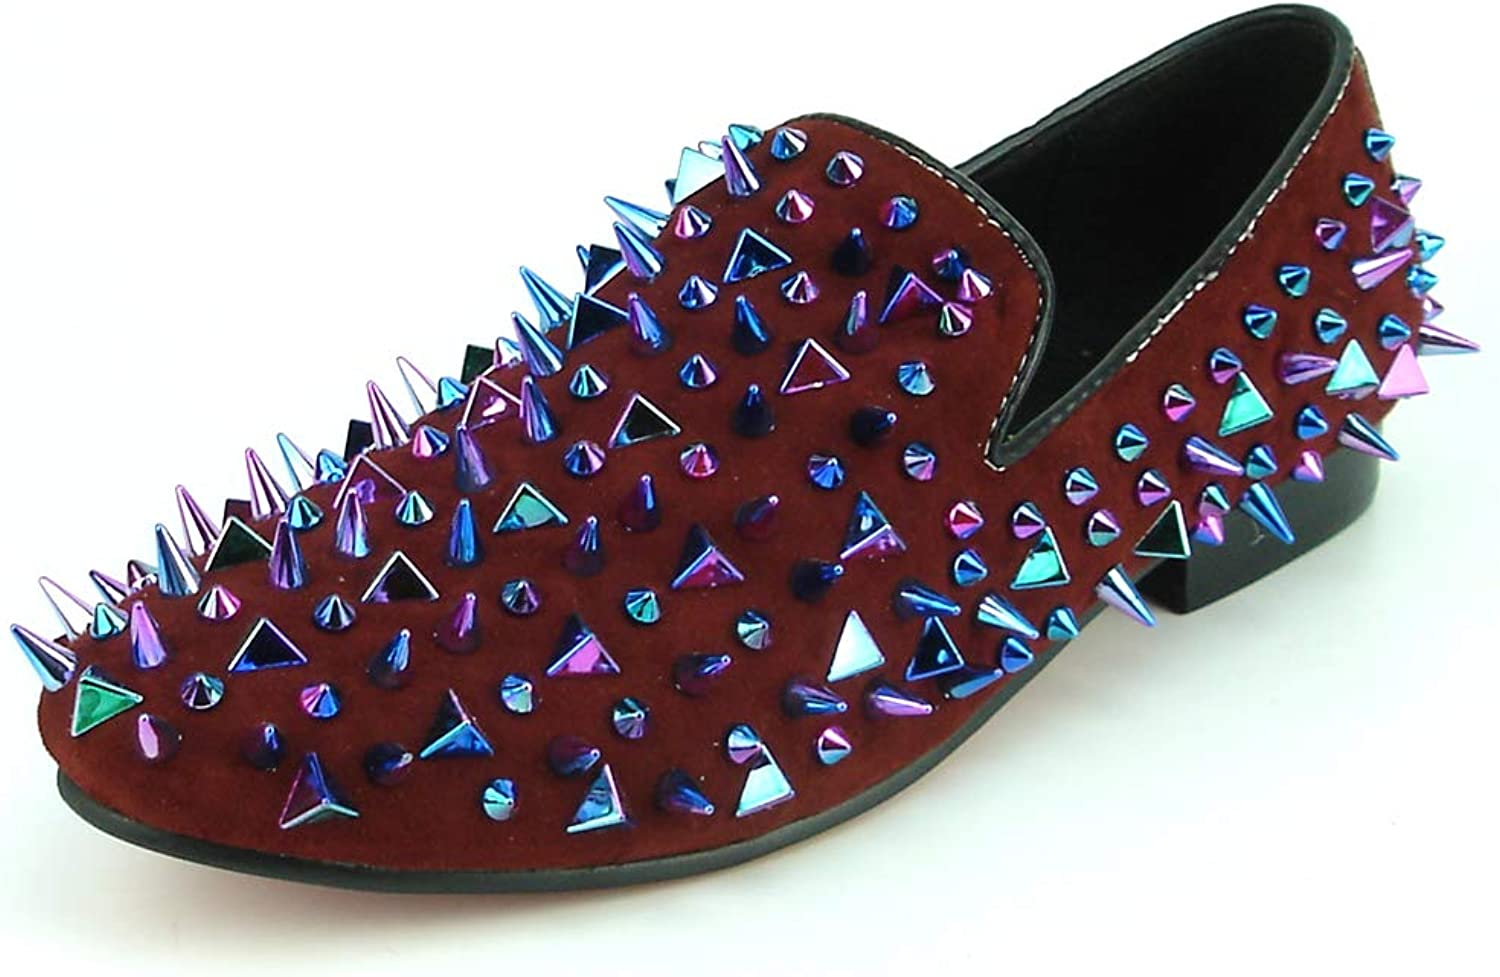 Fiesso by Aurelio Garcia FI-7239-S Burgundy Suede Multi color Spikes Slip on Loafer European shoes Designs